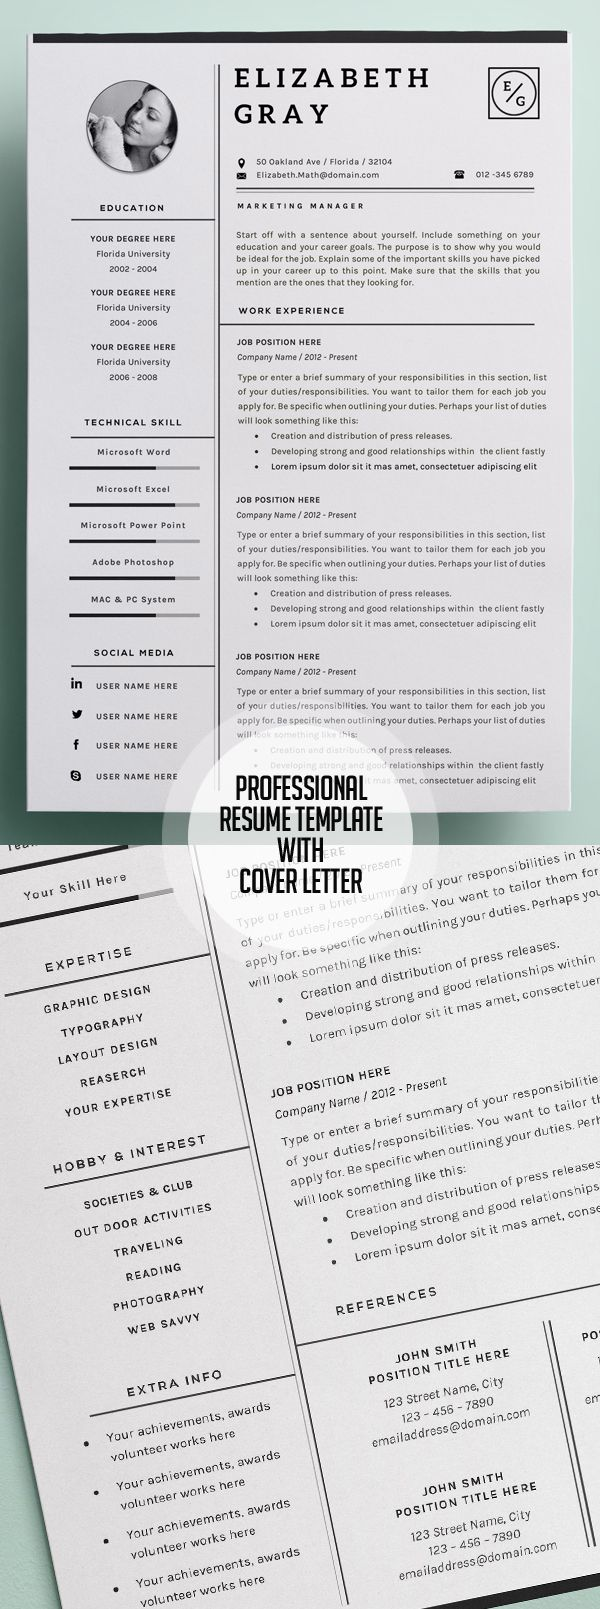 Opposenewapstandardsus  Surprising  Resume Ideas On Pinterest  Resume Resume Templates And  With Goodlooking Professional And Modern Resume Template With Page Cover Cvtemplate With Agreeable Cio Resumes Also Actions Words For Resume In Addition Career Fair Resume And How To Write College Resume As Well As  Resume Template Additionally Photographer Resume Sample From Pinterestcom With Opposenewapstandardsus  Goodlooking  Resume Ideas On Pinterest  Resume Resume Templates And  With Agreeable Professional And Modern Resume Template With Page Cover Cvtemplate And Surprising Cio Resumes Also Actions Words For Resume In Addition Career Fair Resume From Pinterestcom